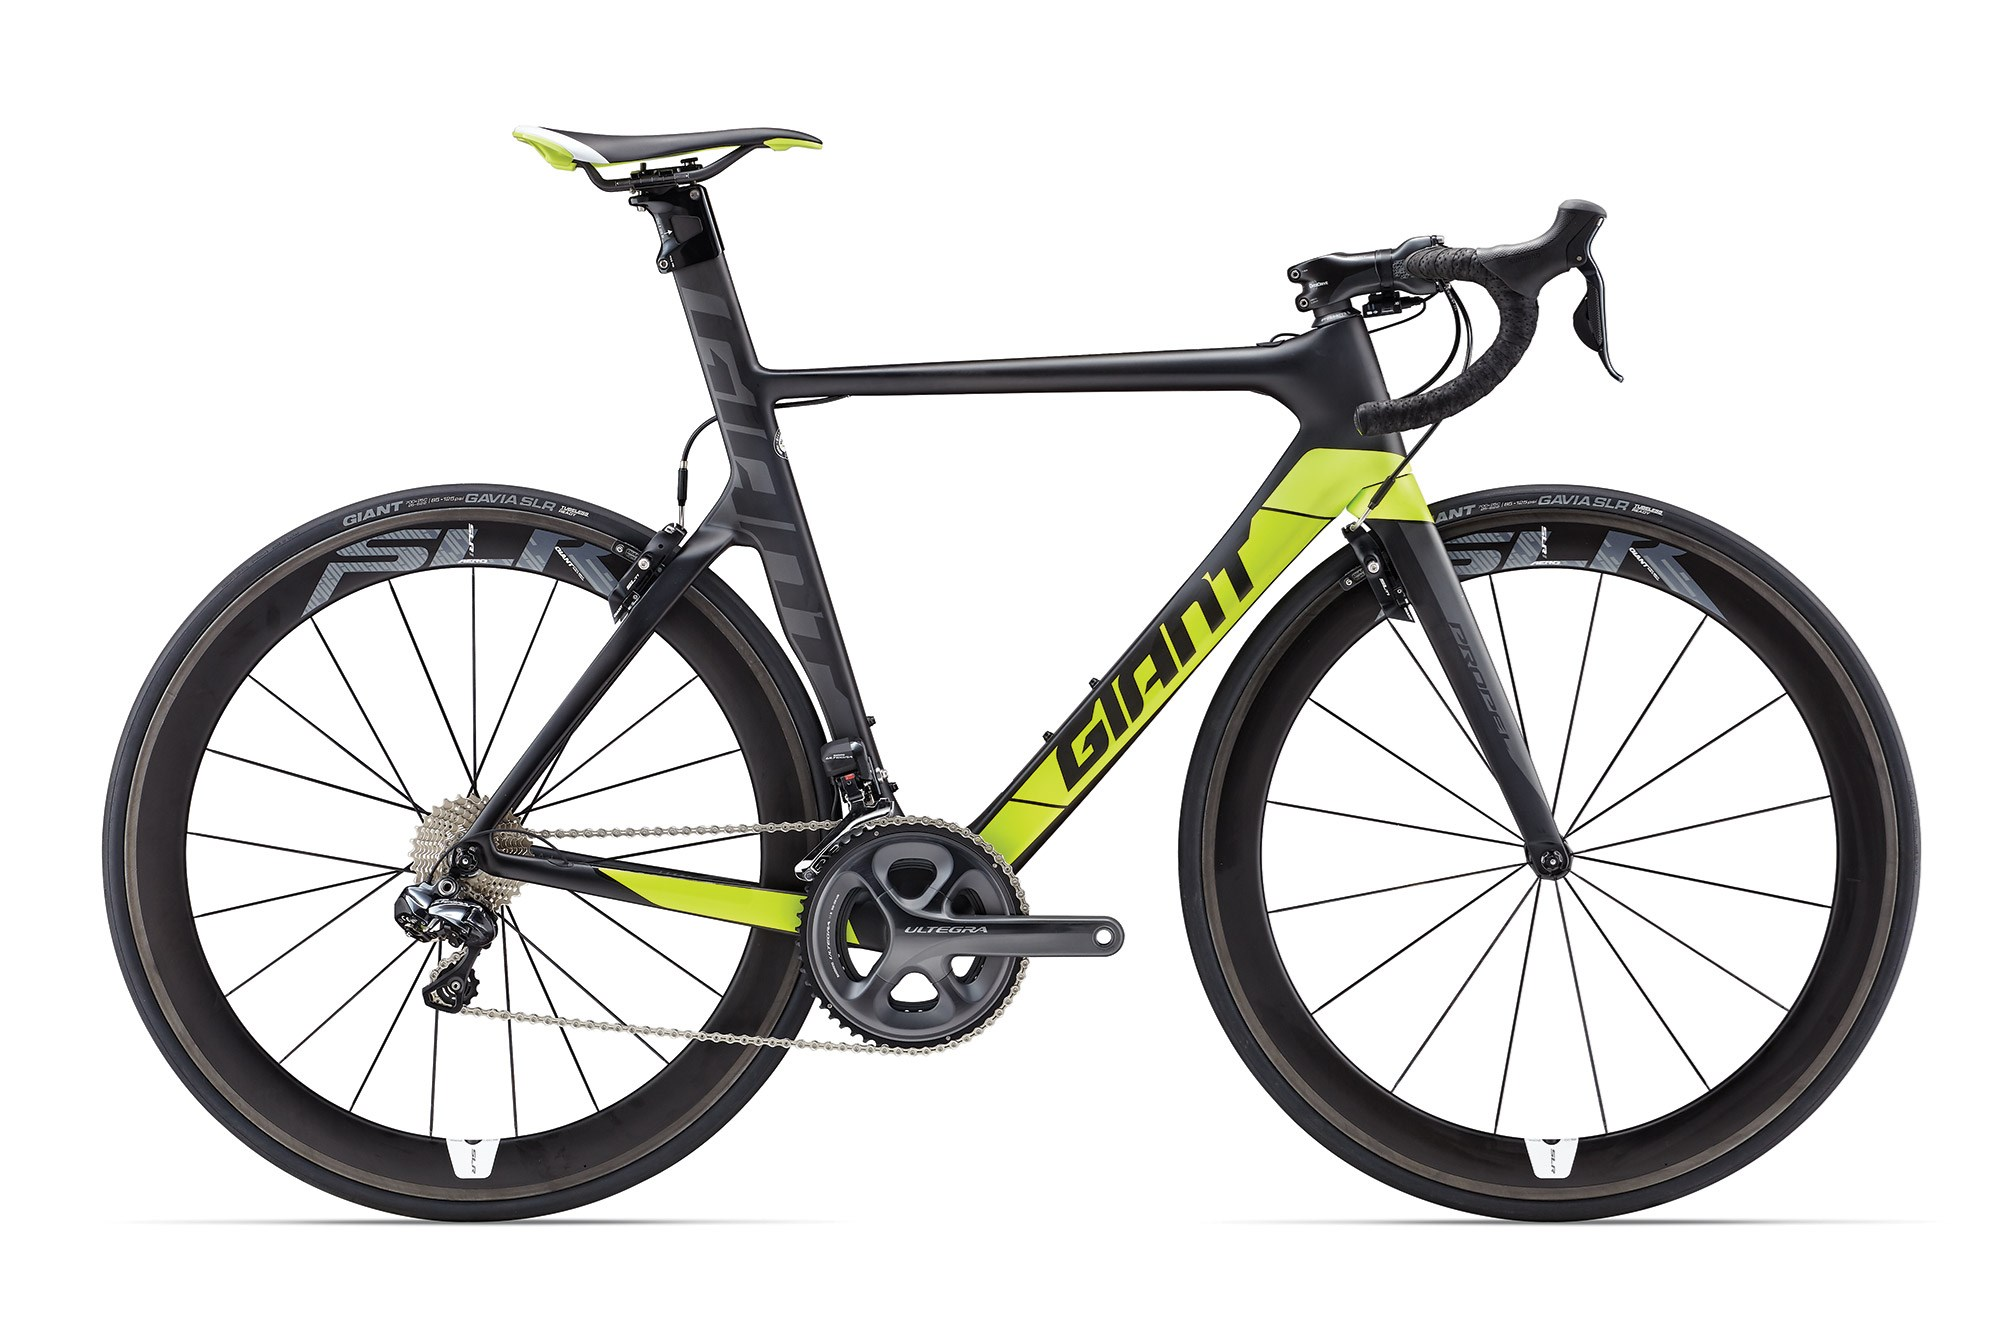 2017 GIANT PROPEL ADVANCED SL 1 ISP